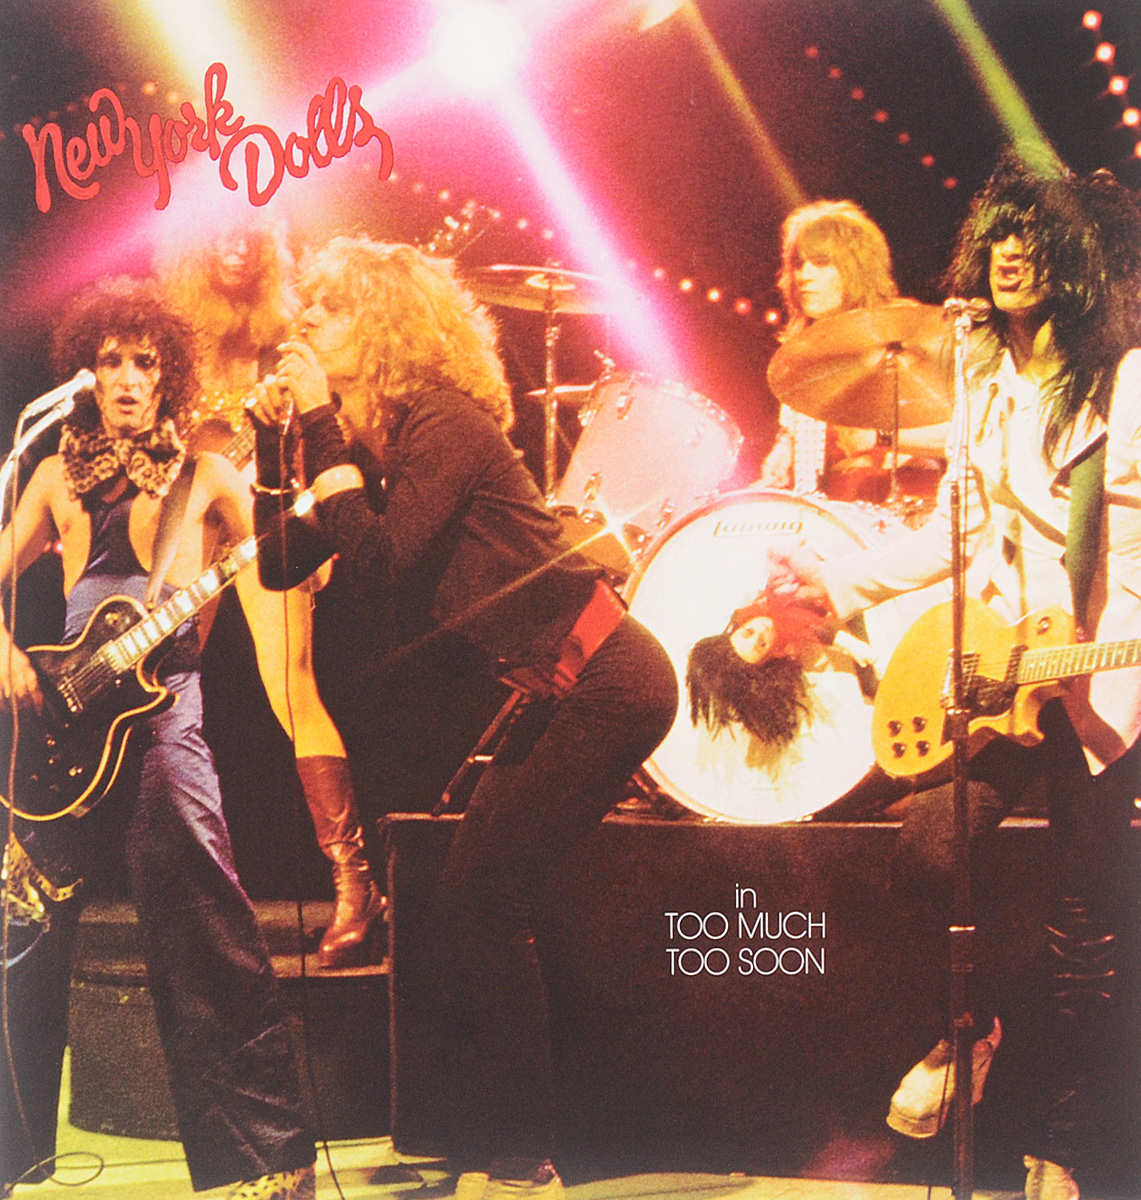 New York Dolls New York Dolls. Too Much Too Soon (LP) snsd sunny lee soon kyu autographed signed original photo 4 6 inches collection new korean freeshipping 03 2017